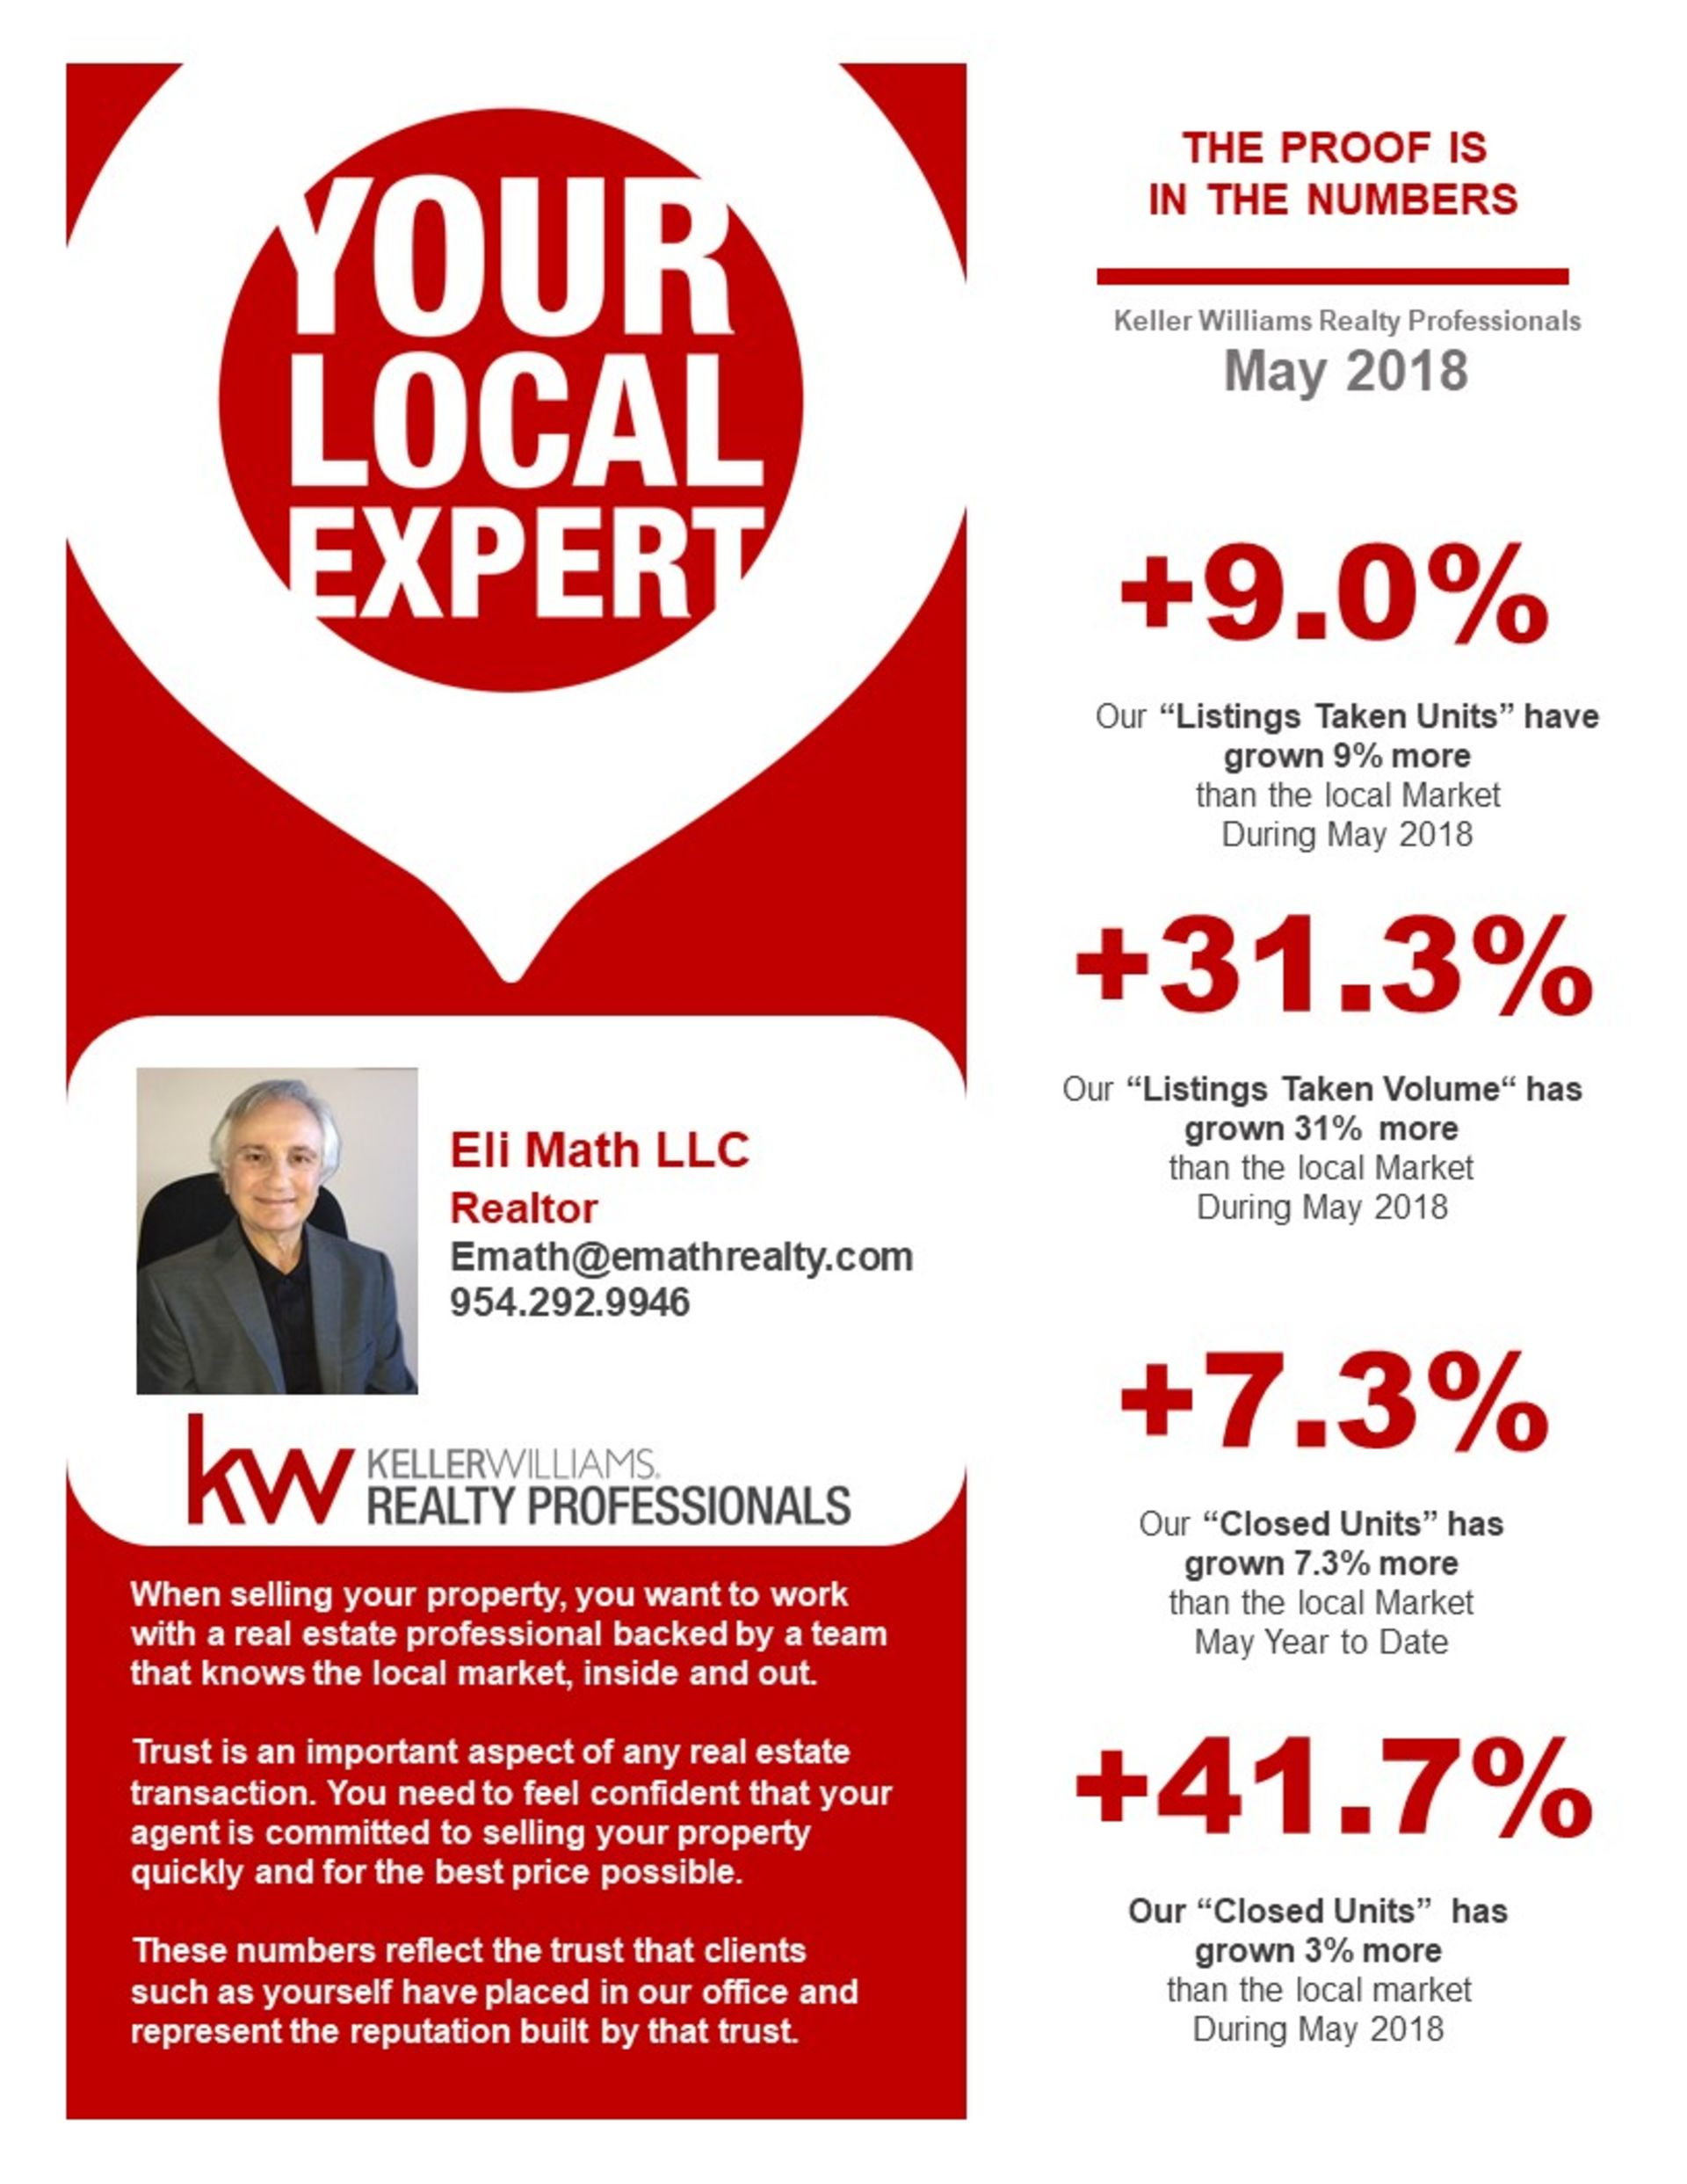 Your Local Expert here in South Florida